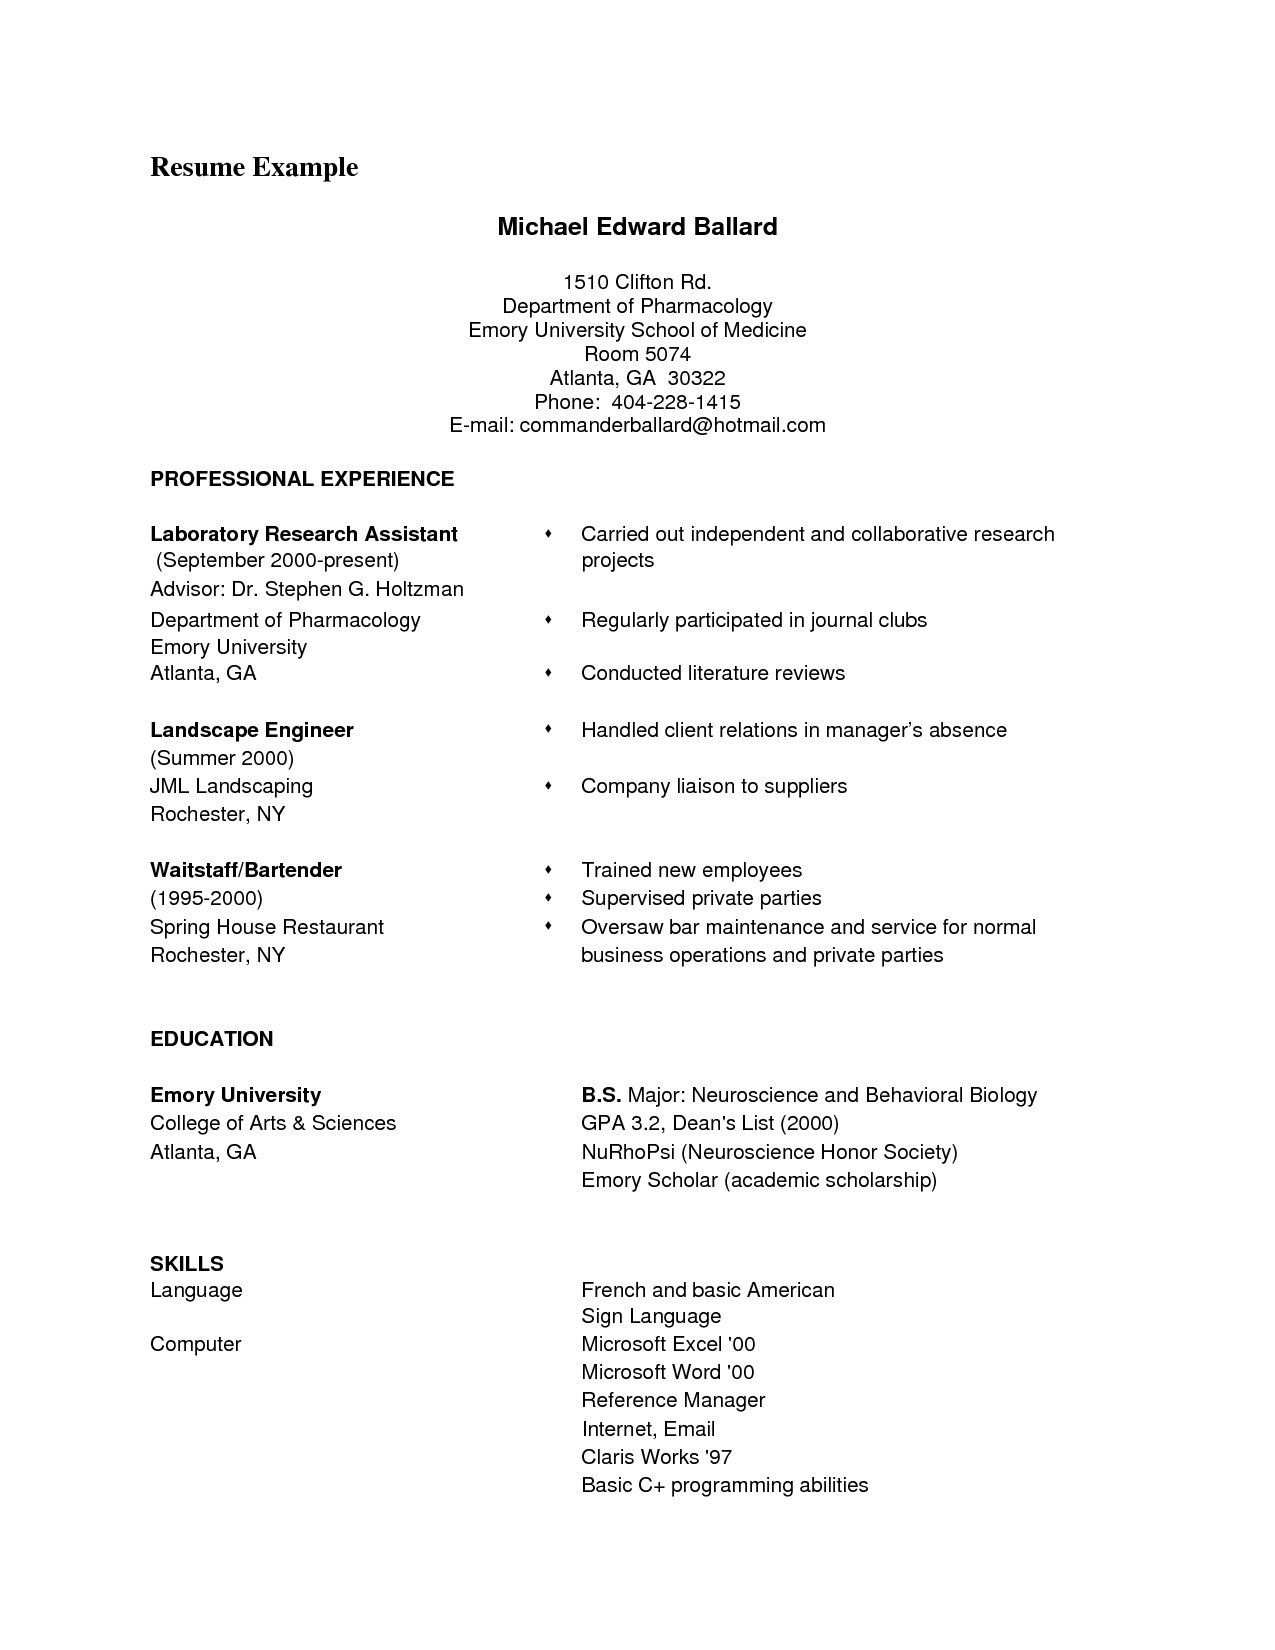 biology resume template example-Classic Resume Templates ¢Ë†Å¡ Powerpoint Templates for Biology New Prophoto Templates 0d 10-e